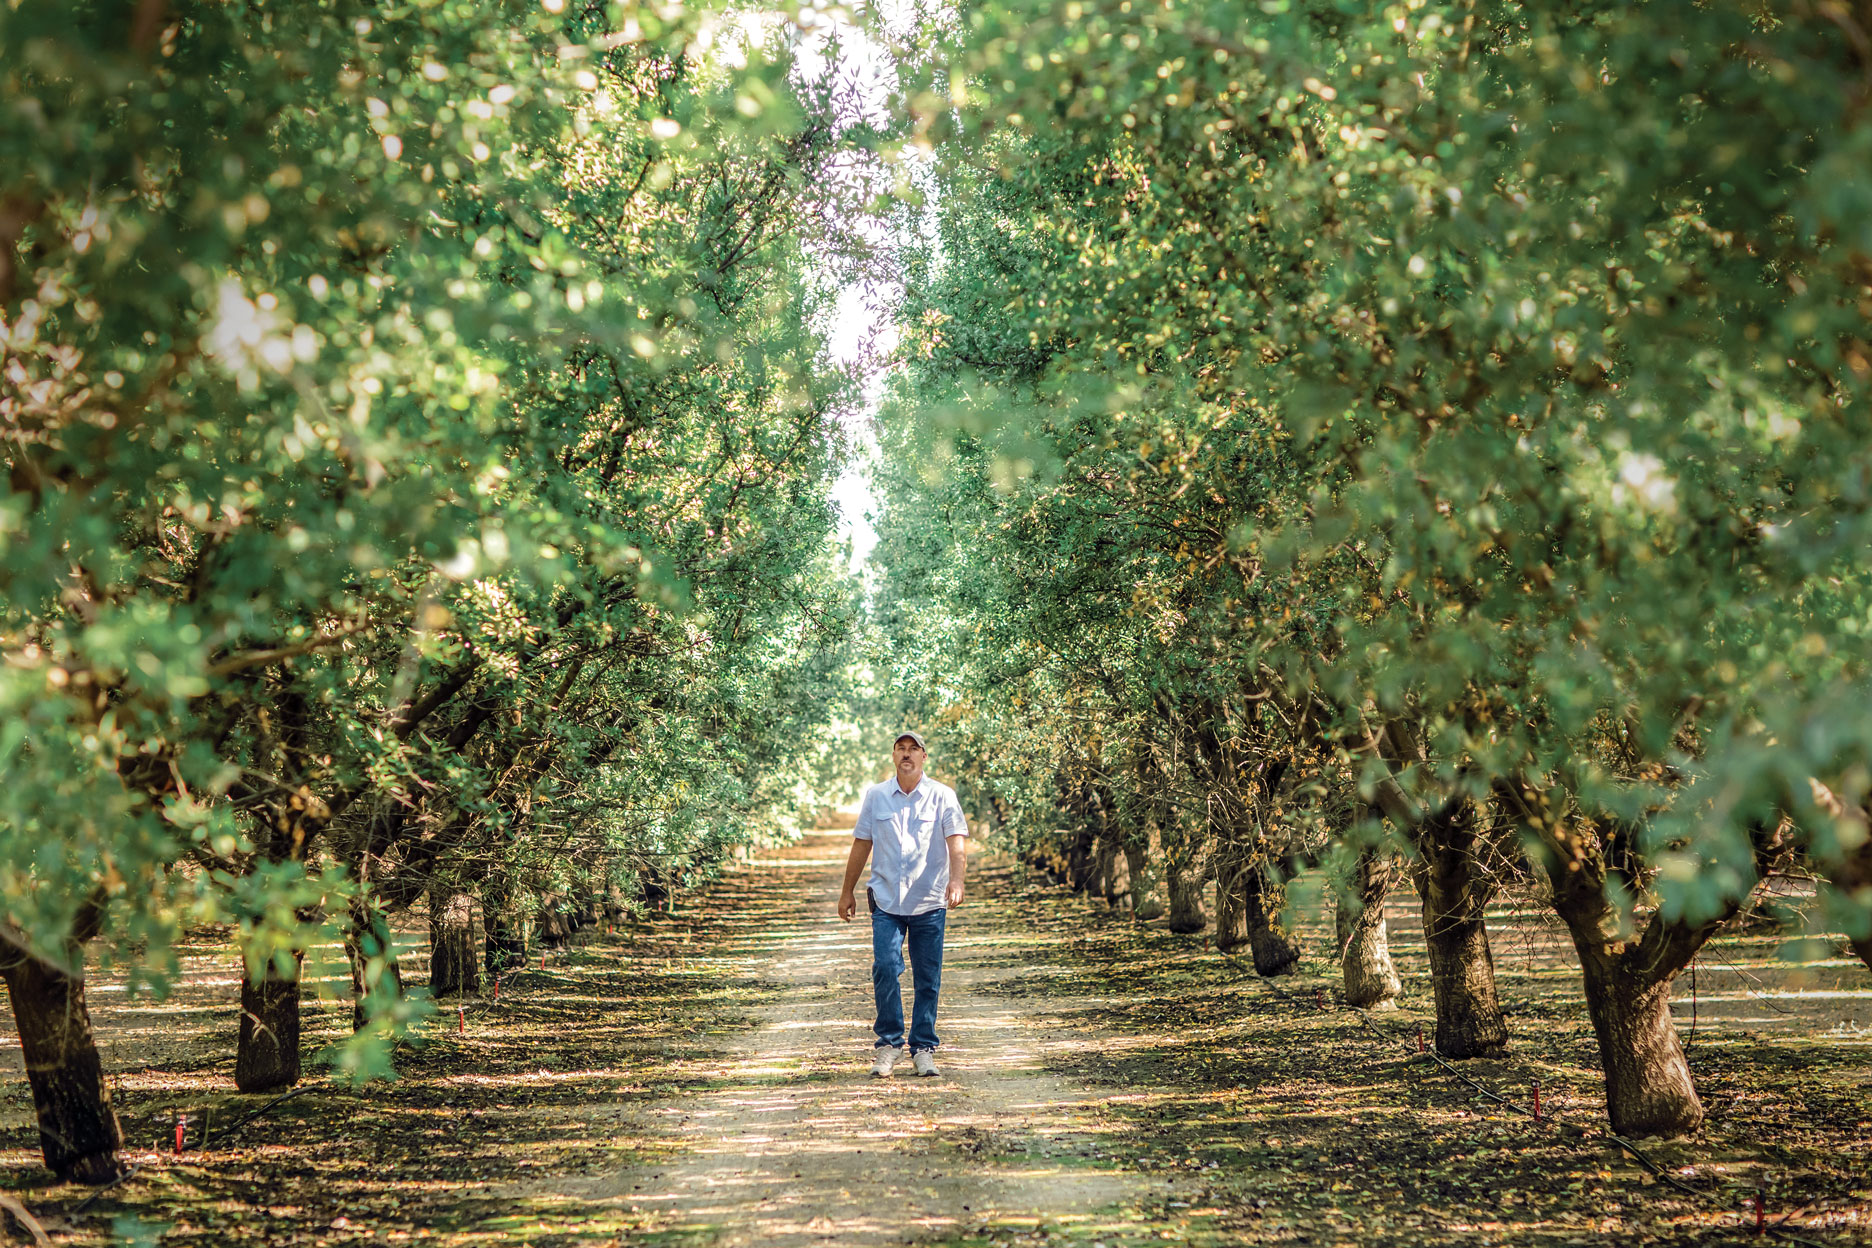 man walking through agricultural orchards